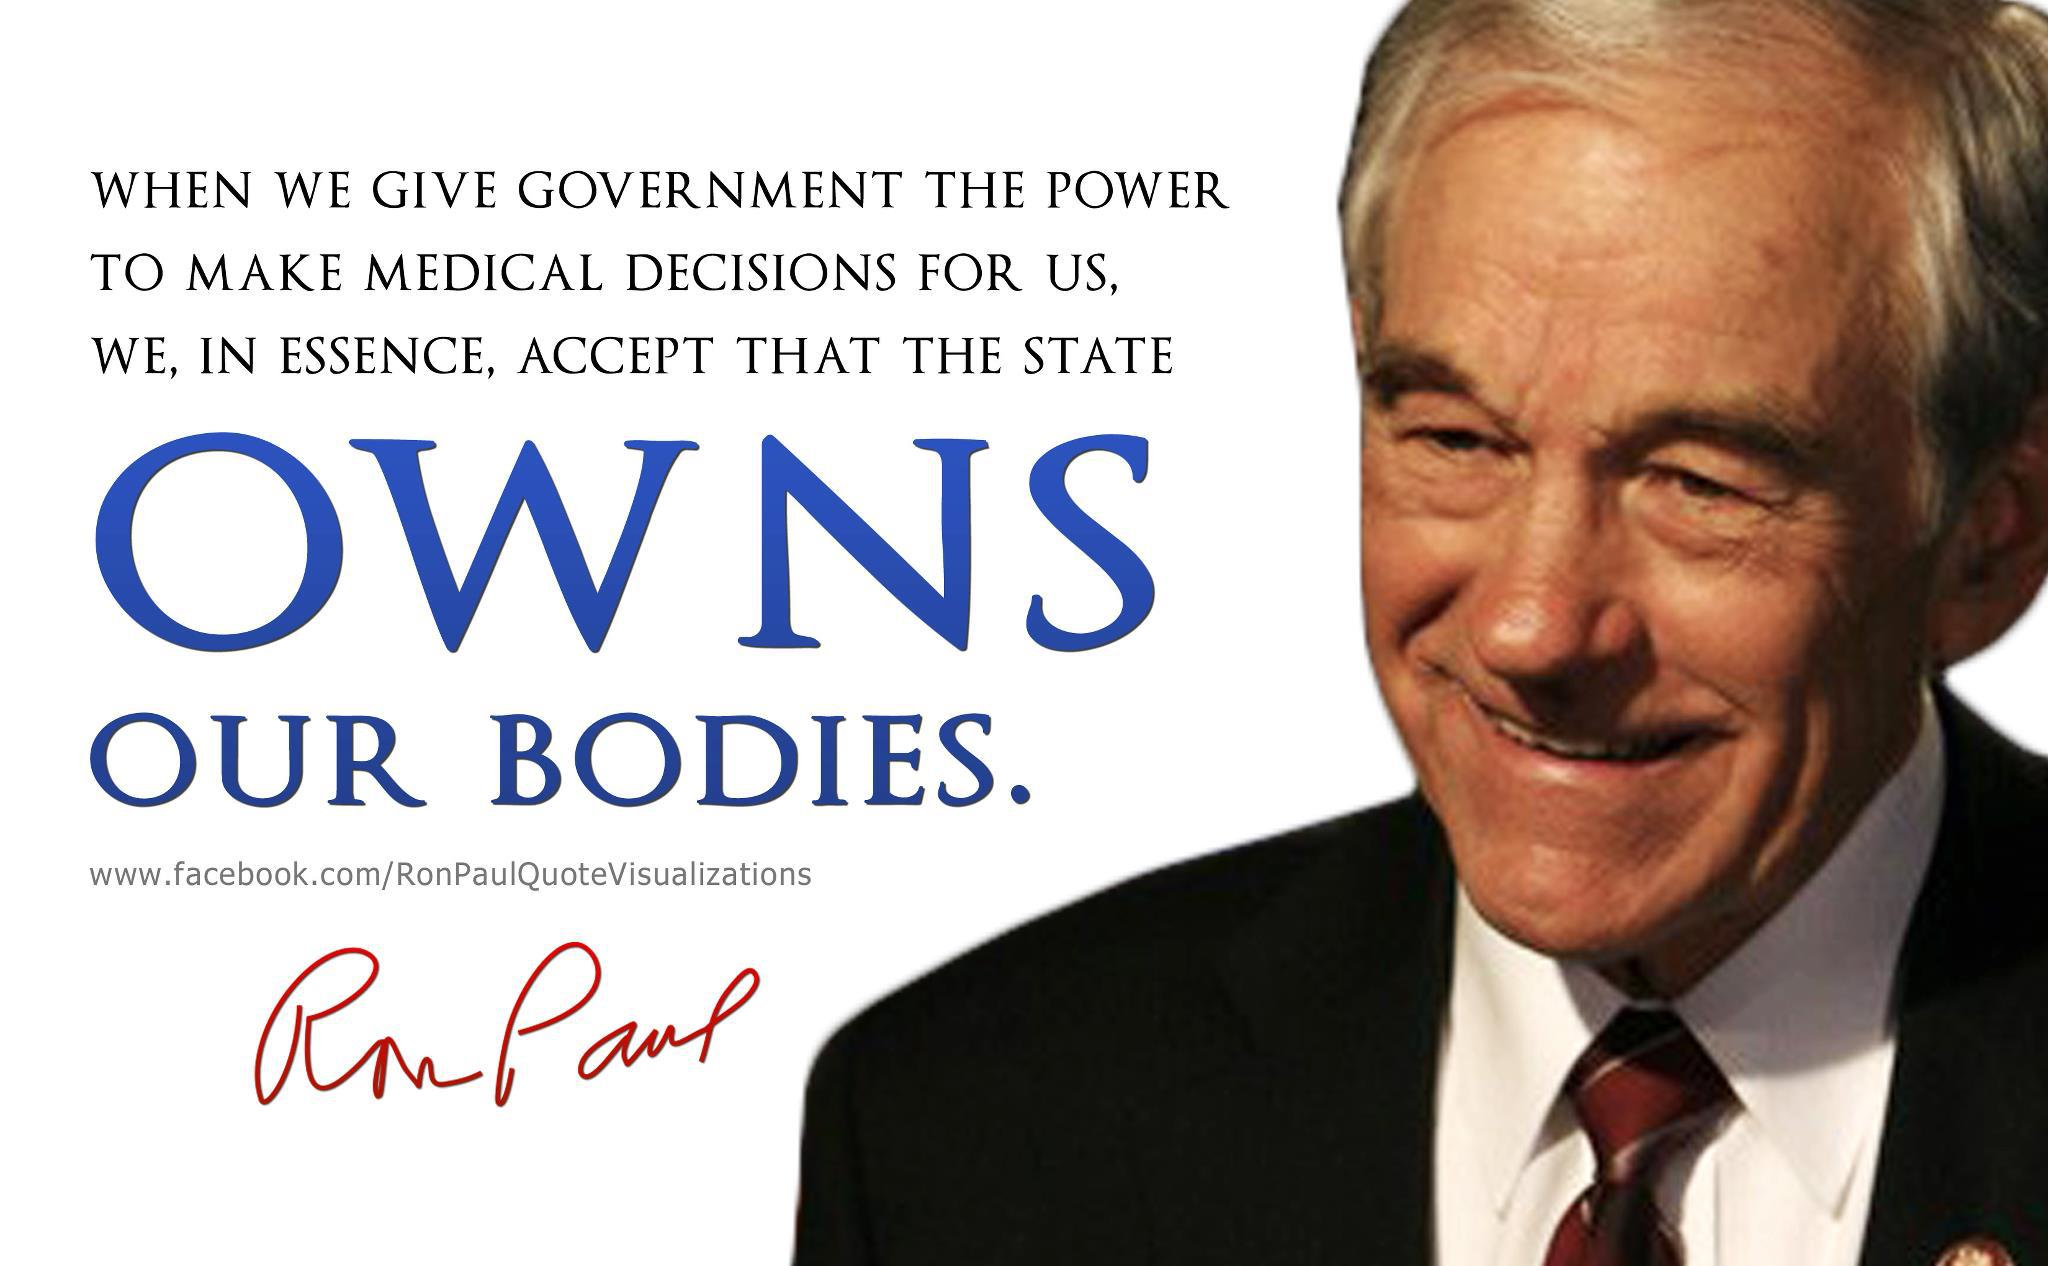 obamacare-Ron Paul